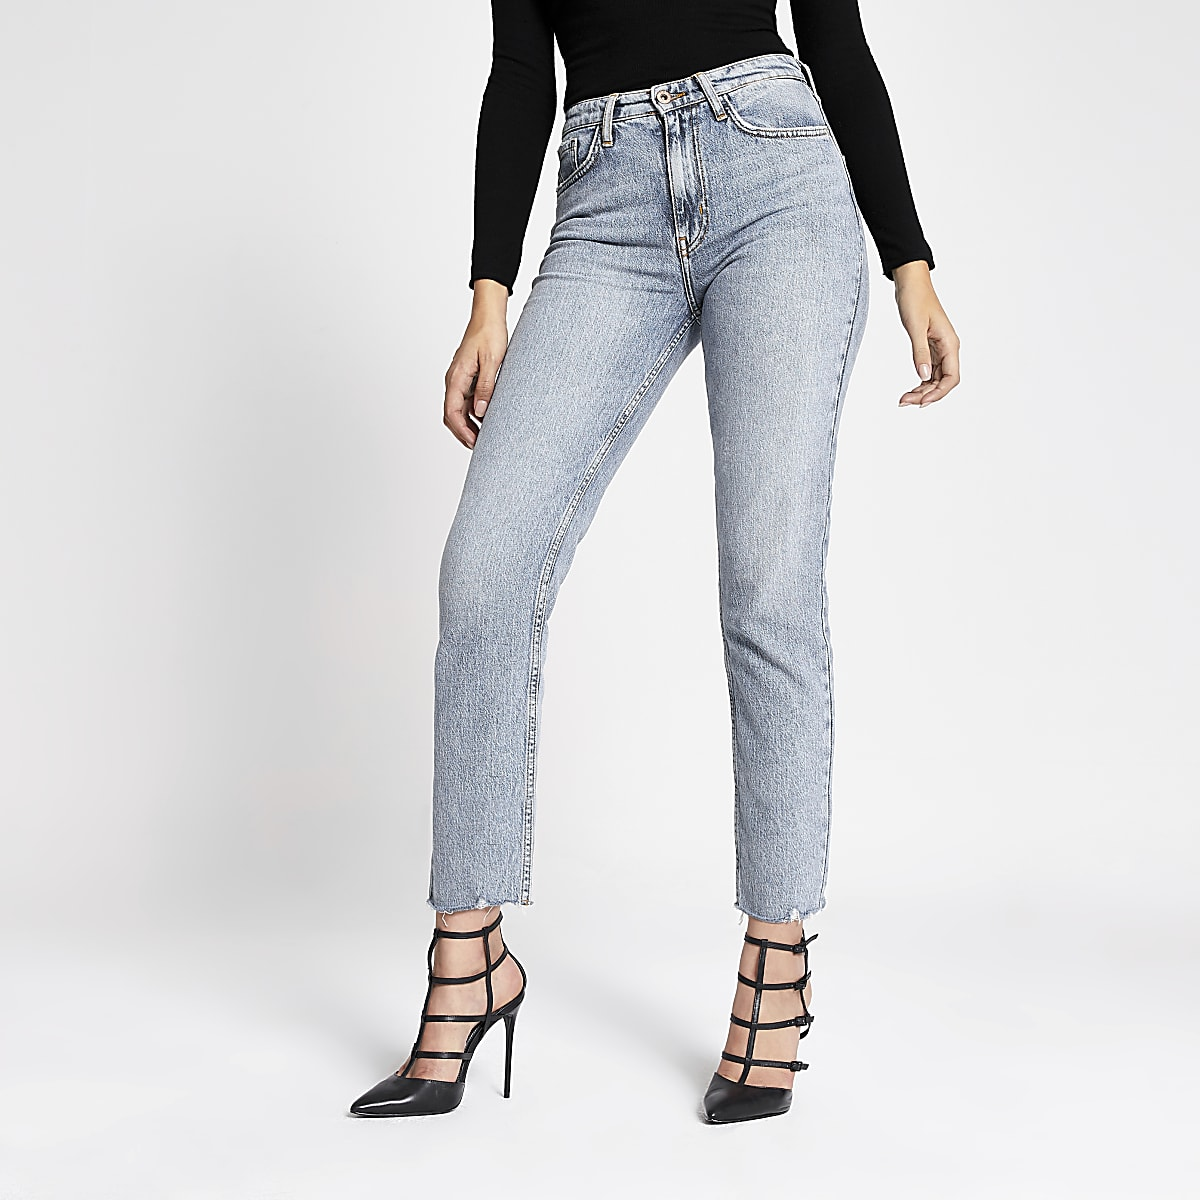 The Norma Light Blue Straight Jeans